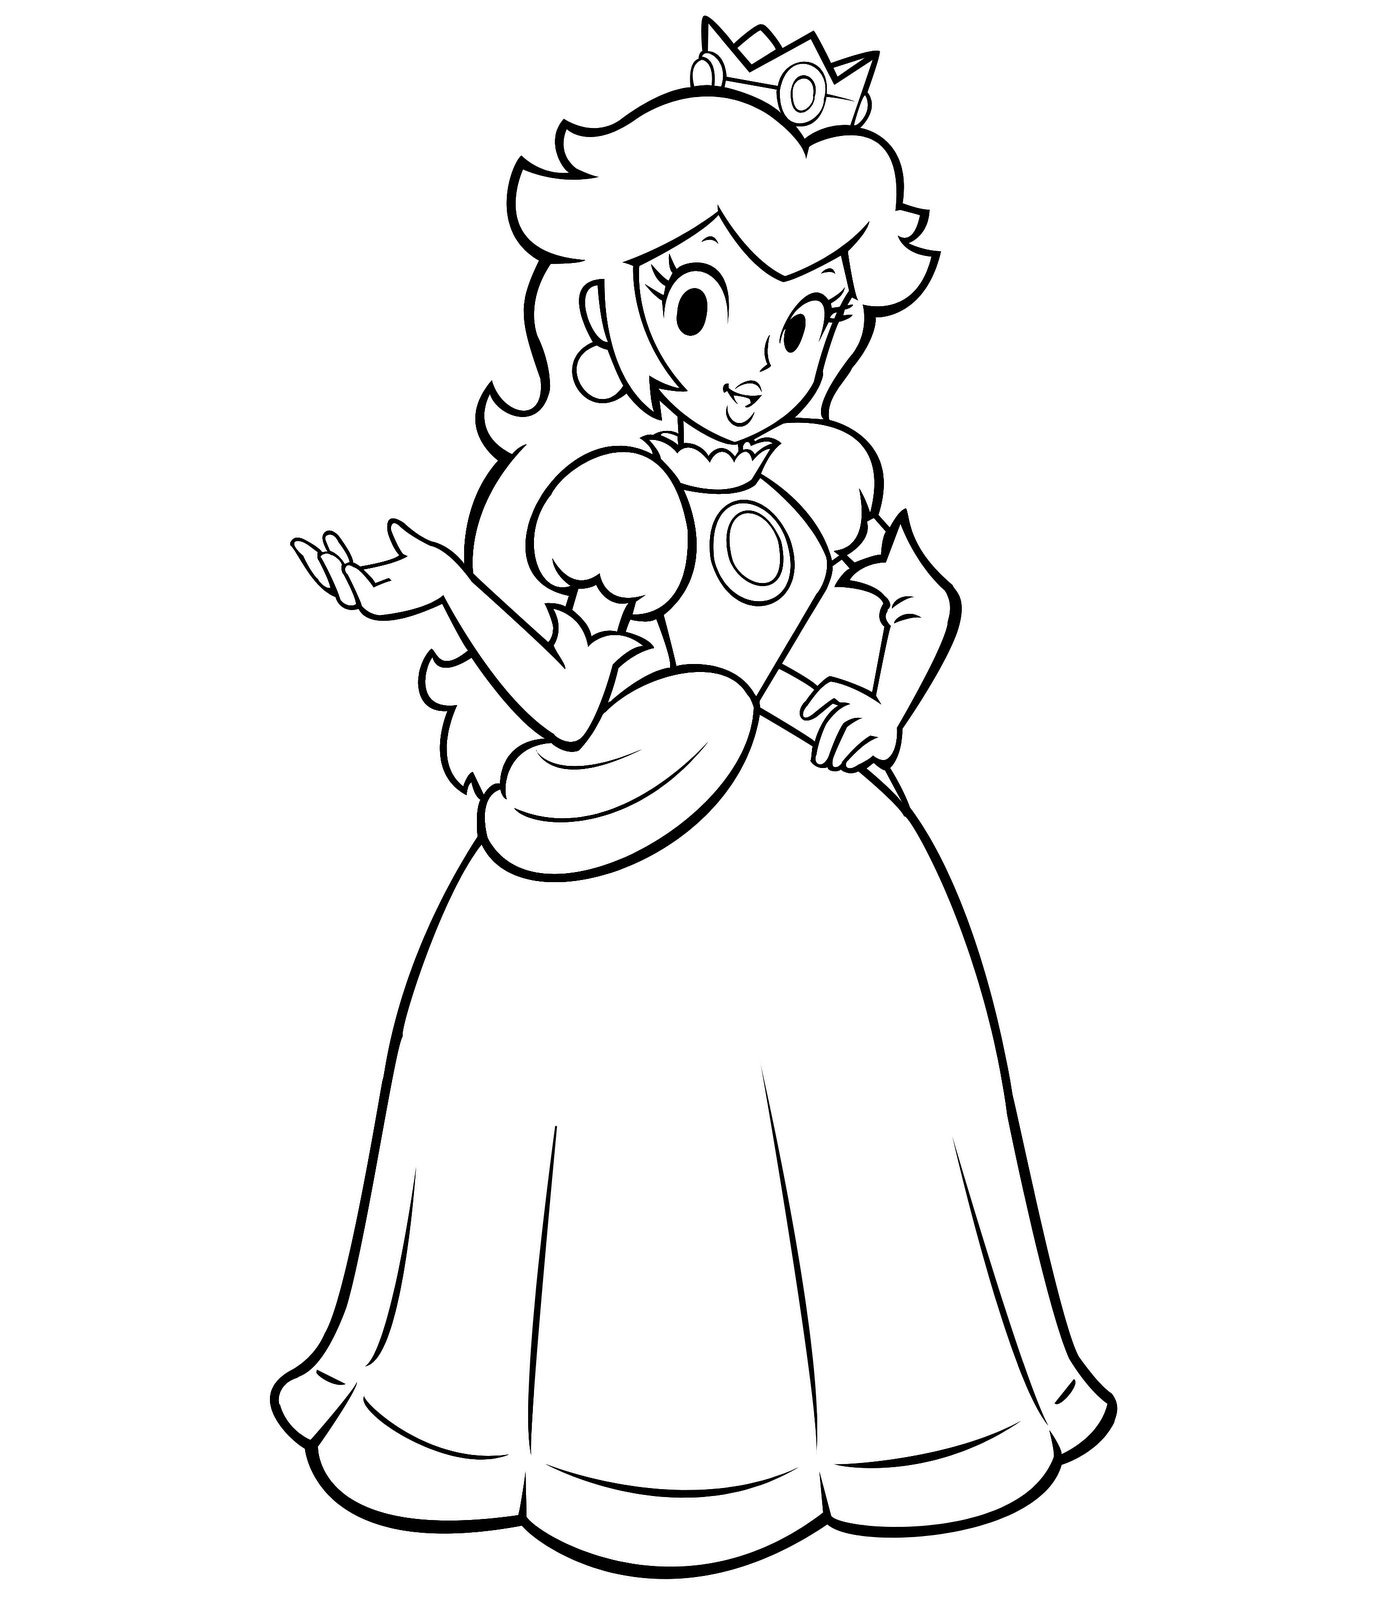 princess toadstool coloring pages - photo#1